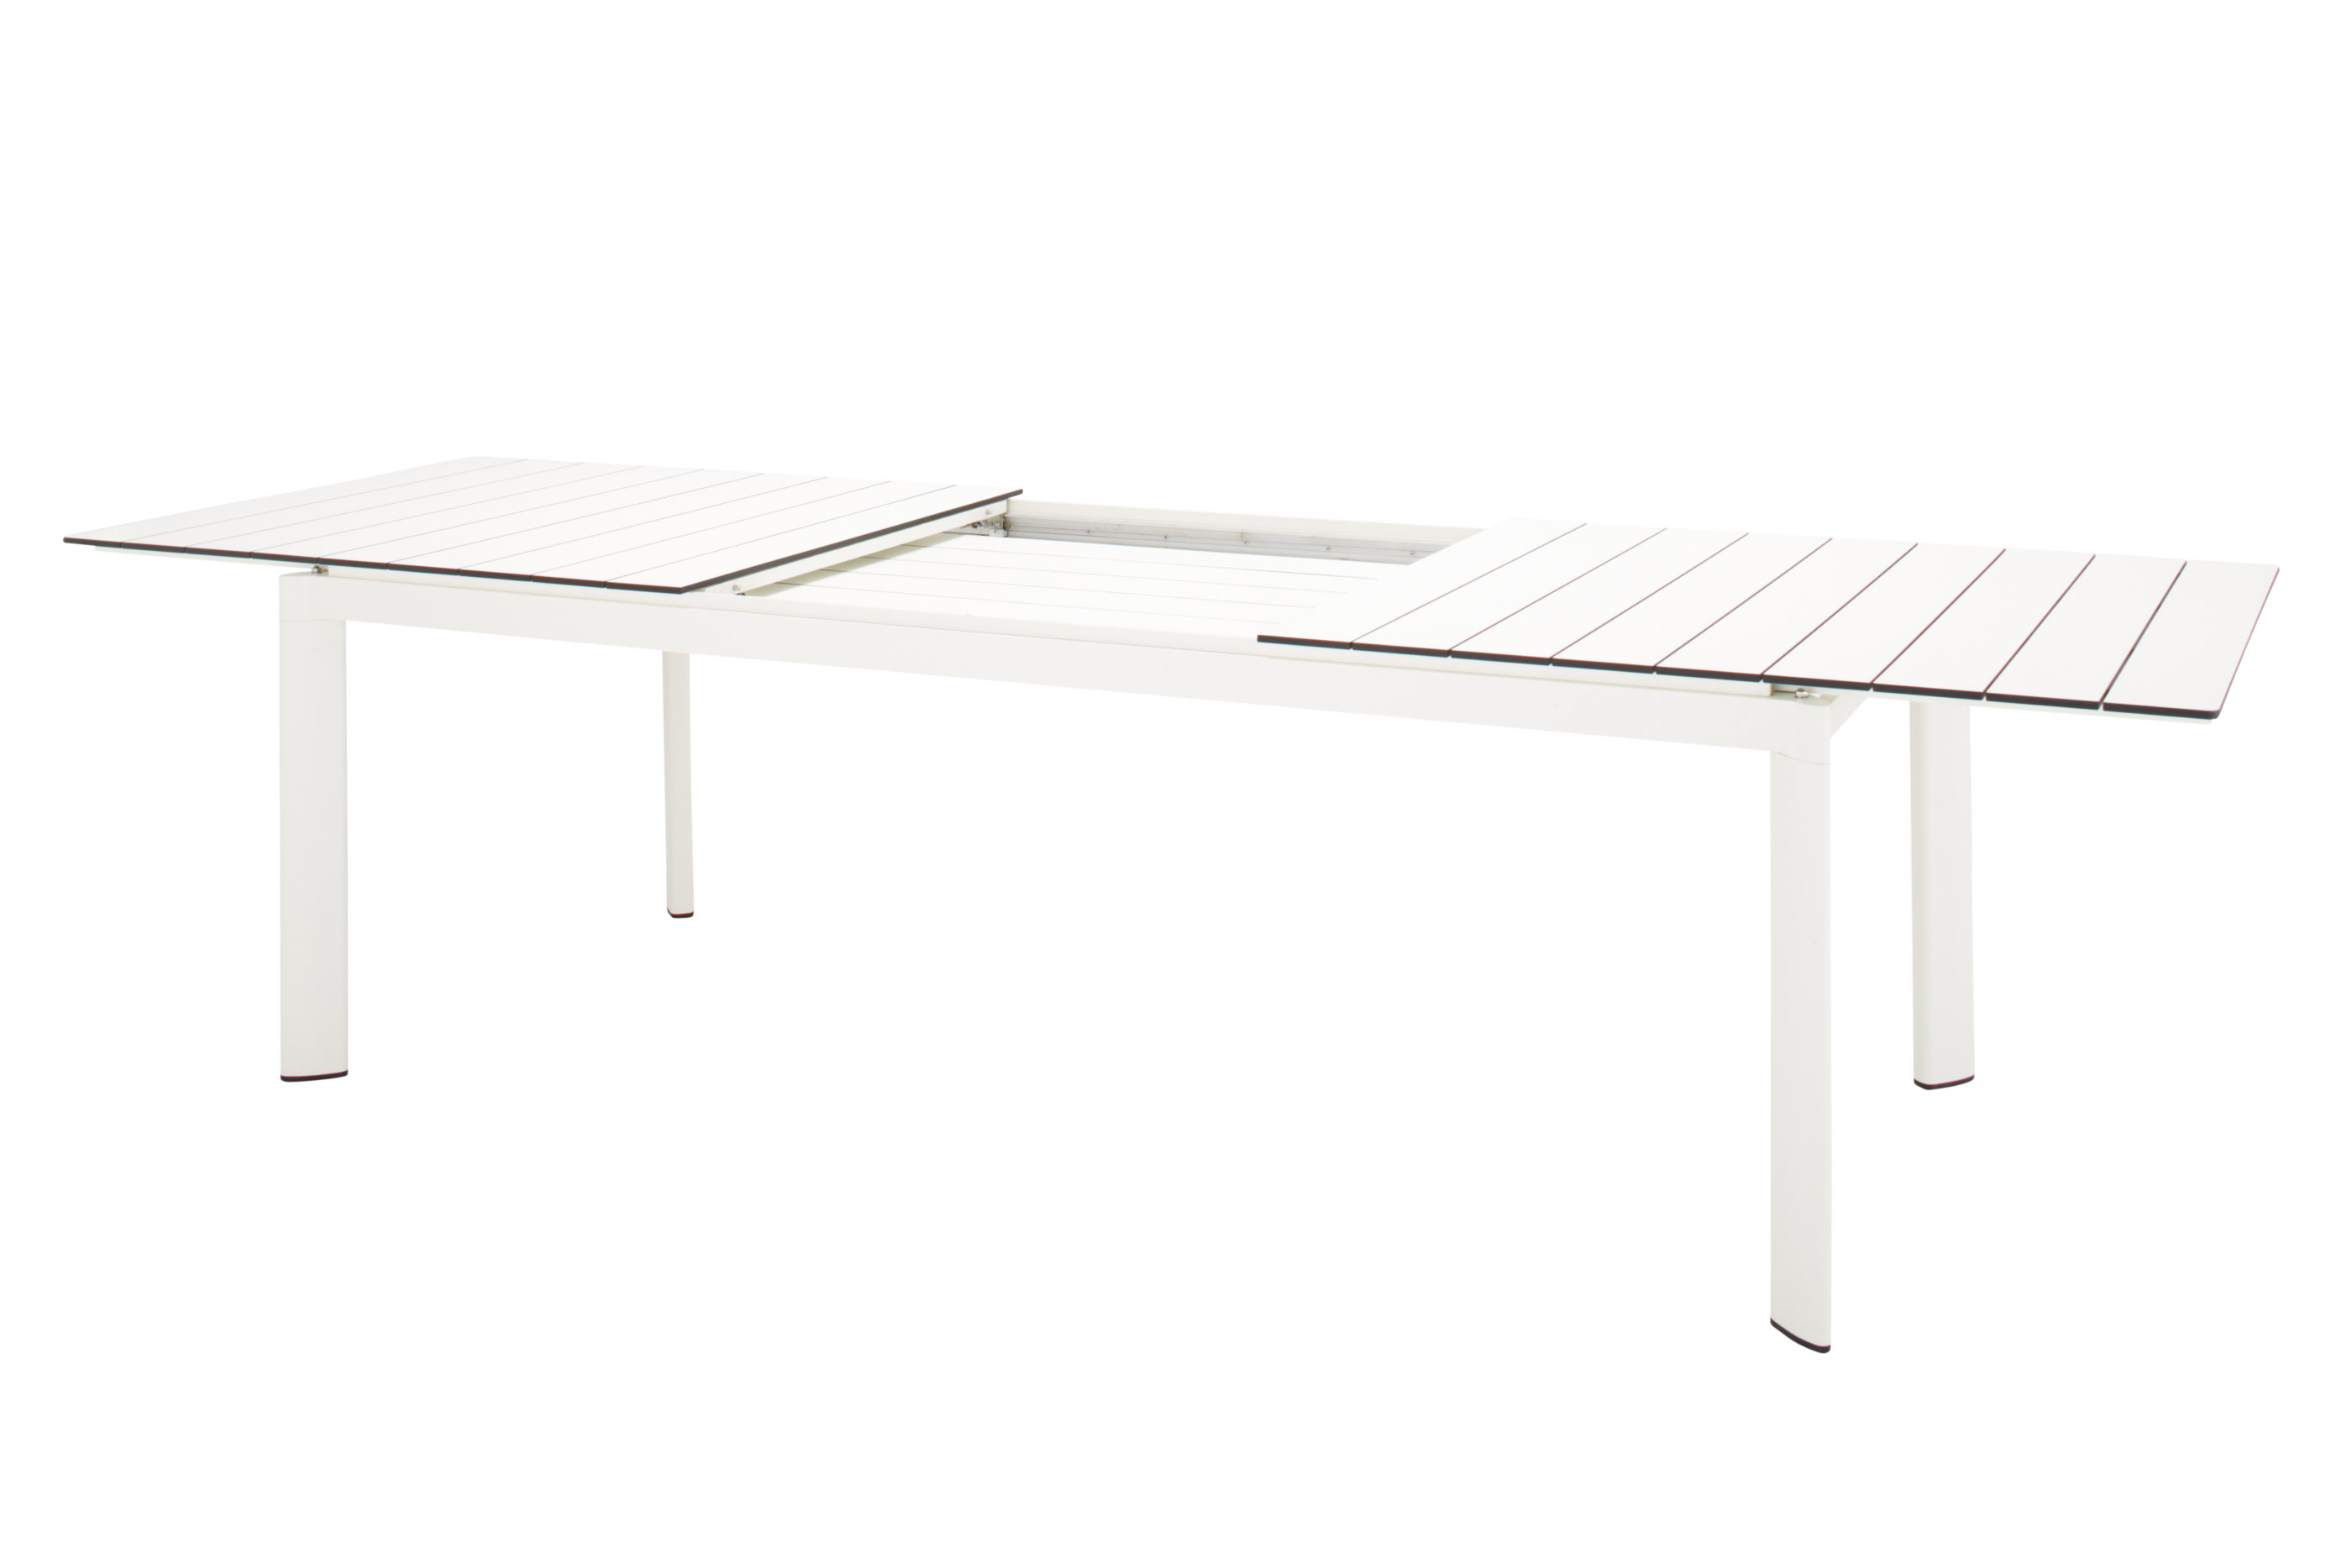 Porto Extending Dining Table Outdoor Dining Table Dining Table Design Modern Dining Table